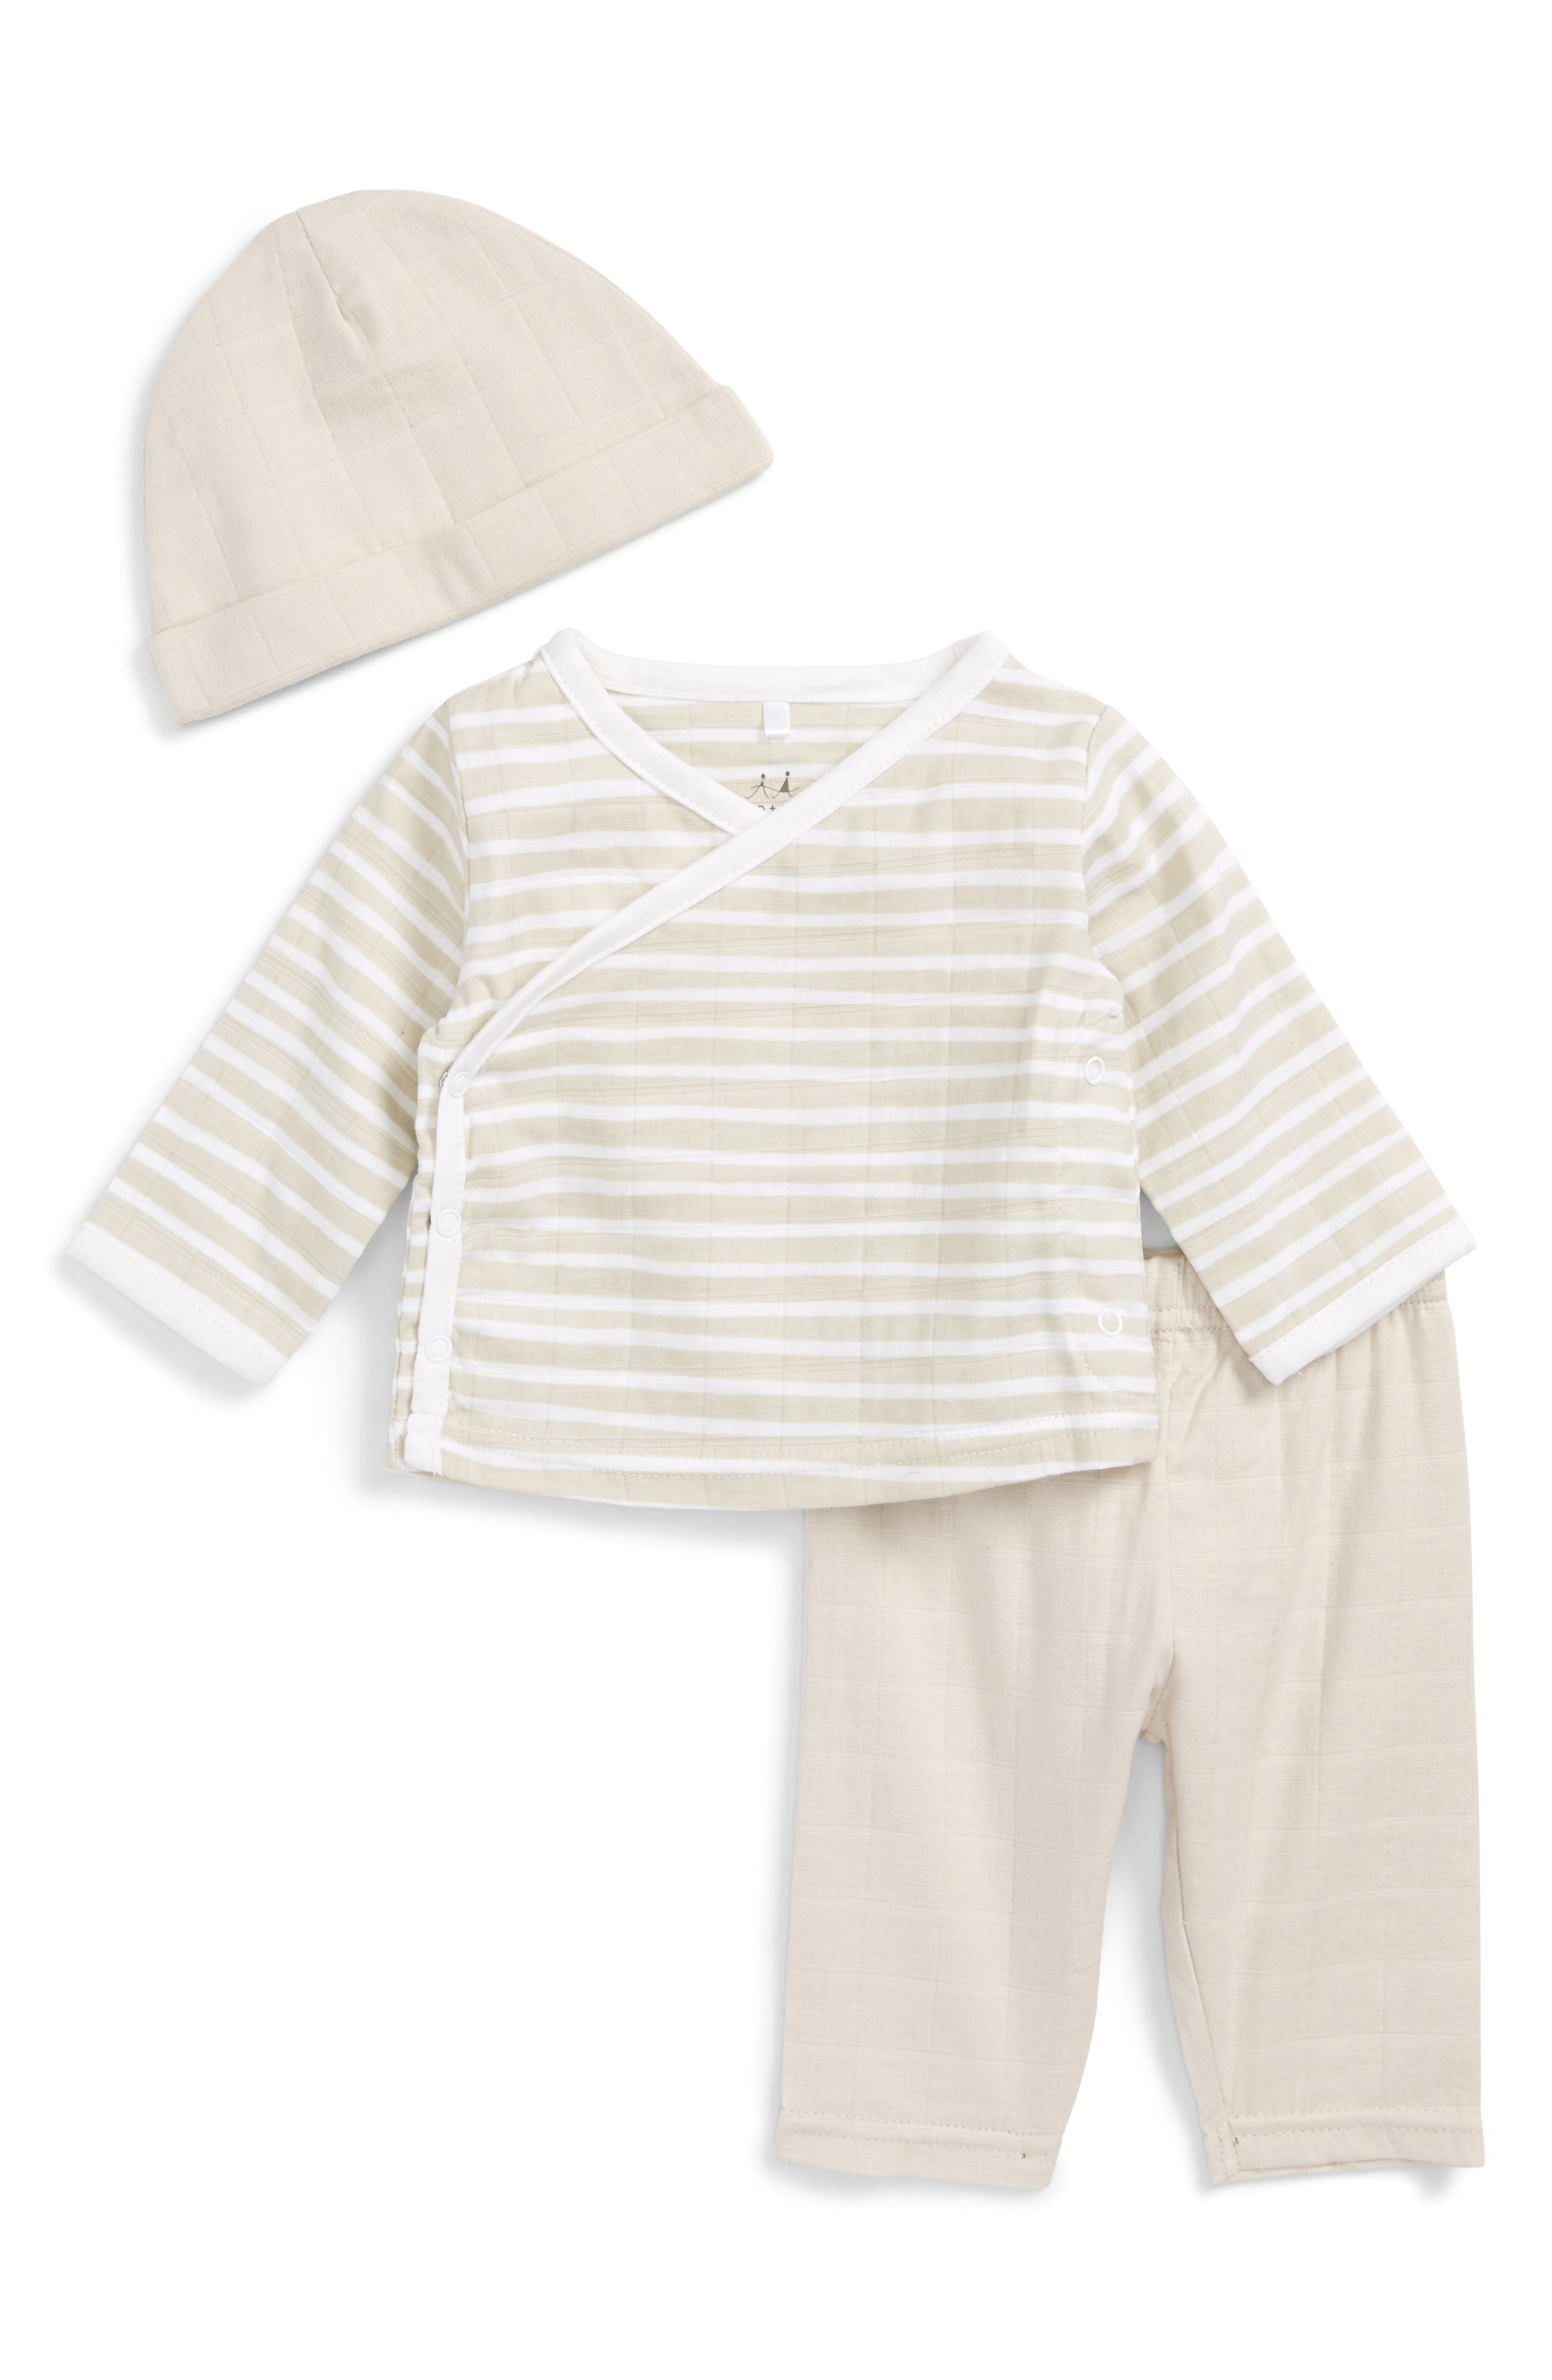 aden + anais Quilted Shirt, Pants & Beanie Set (Baby)